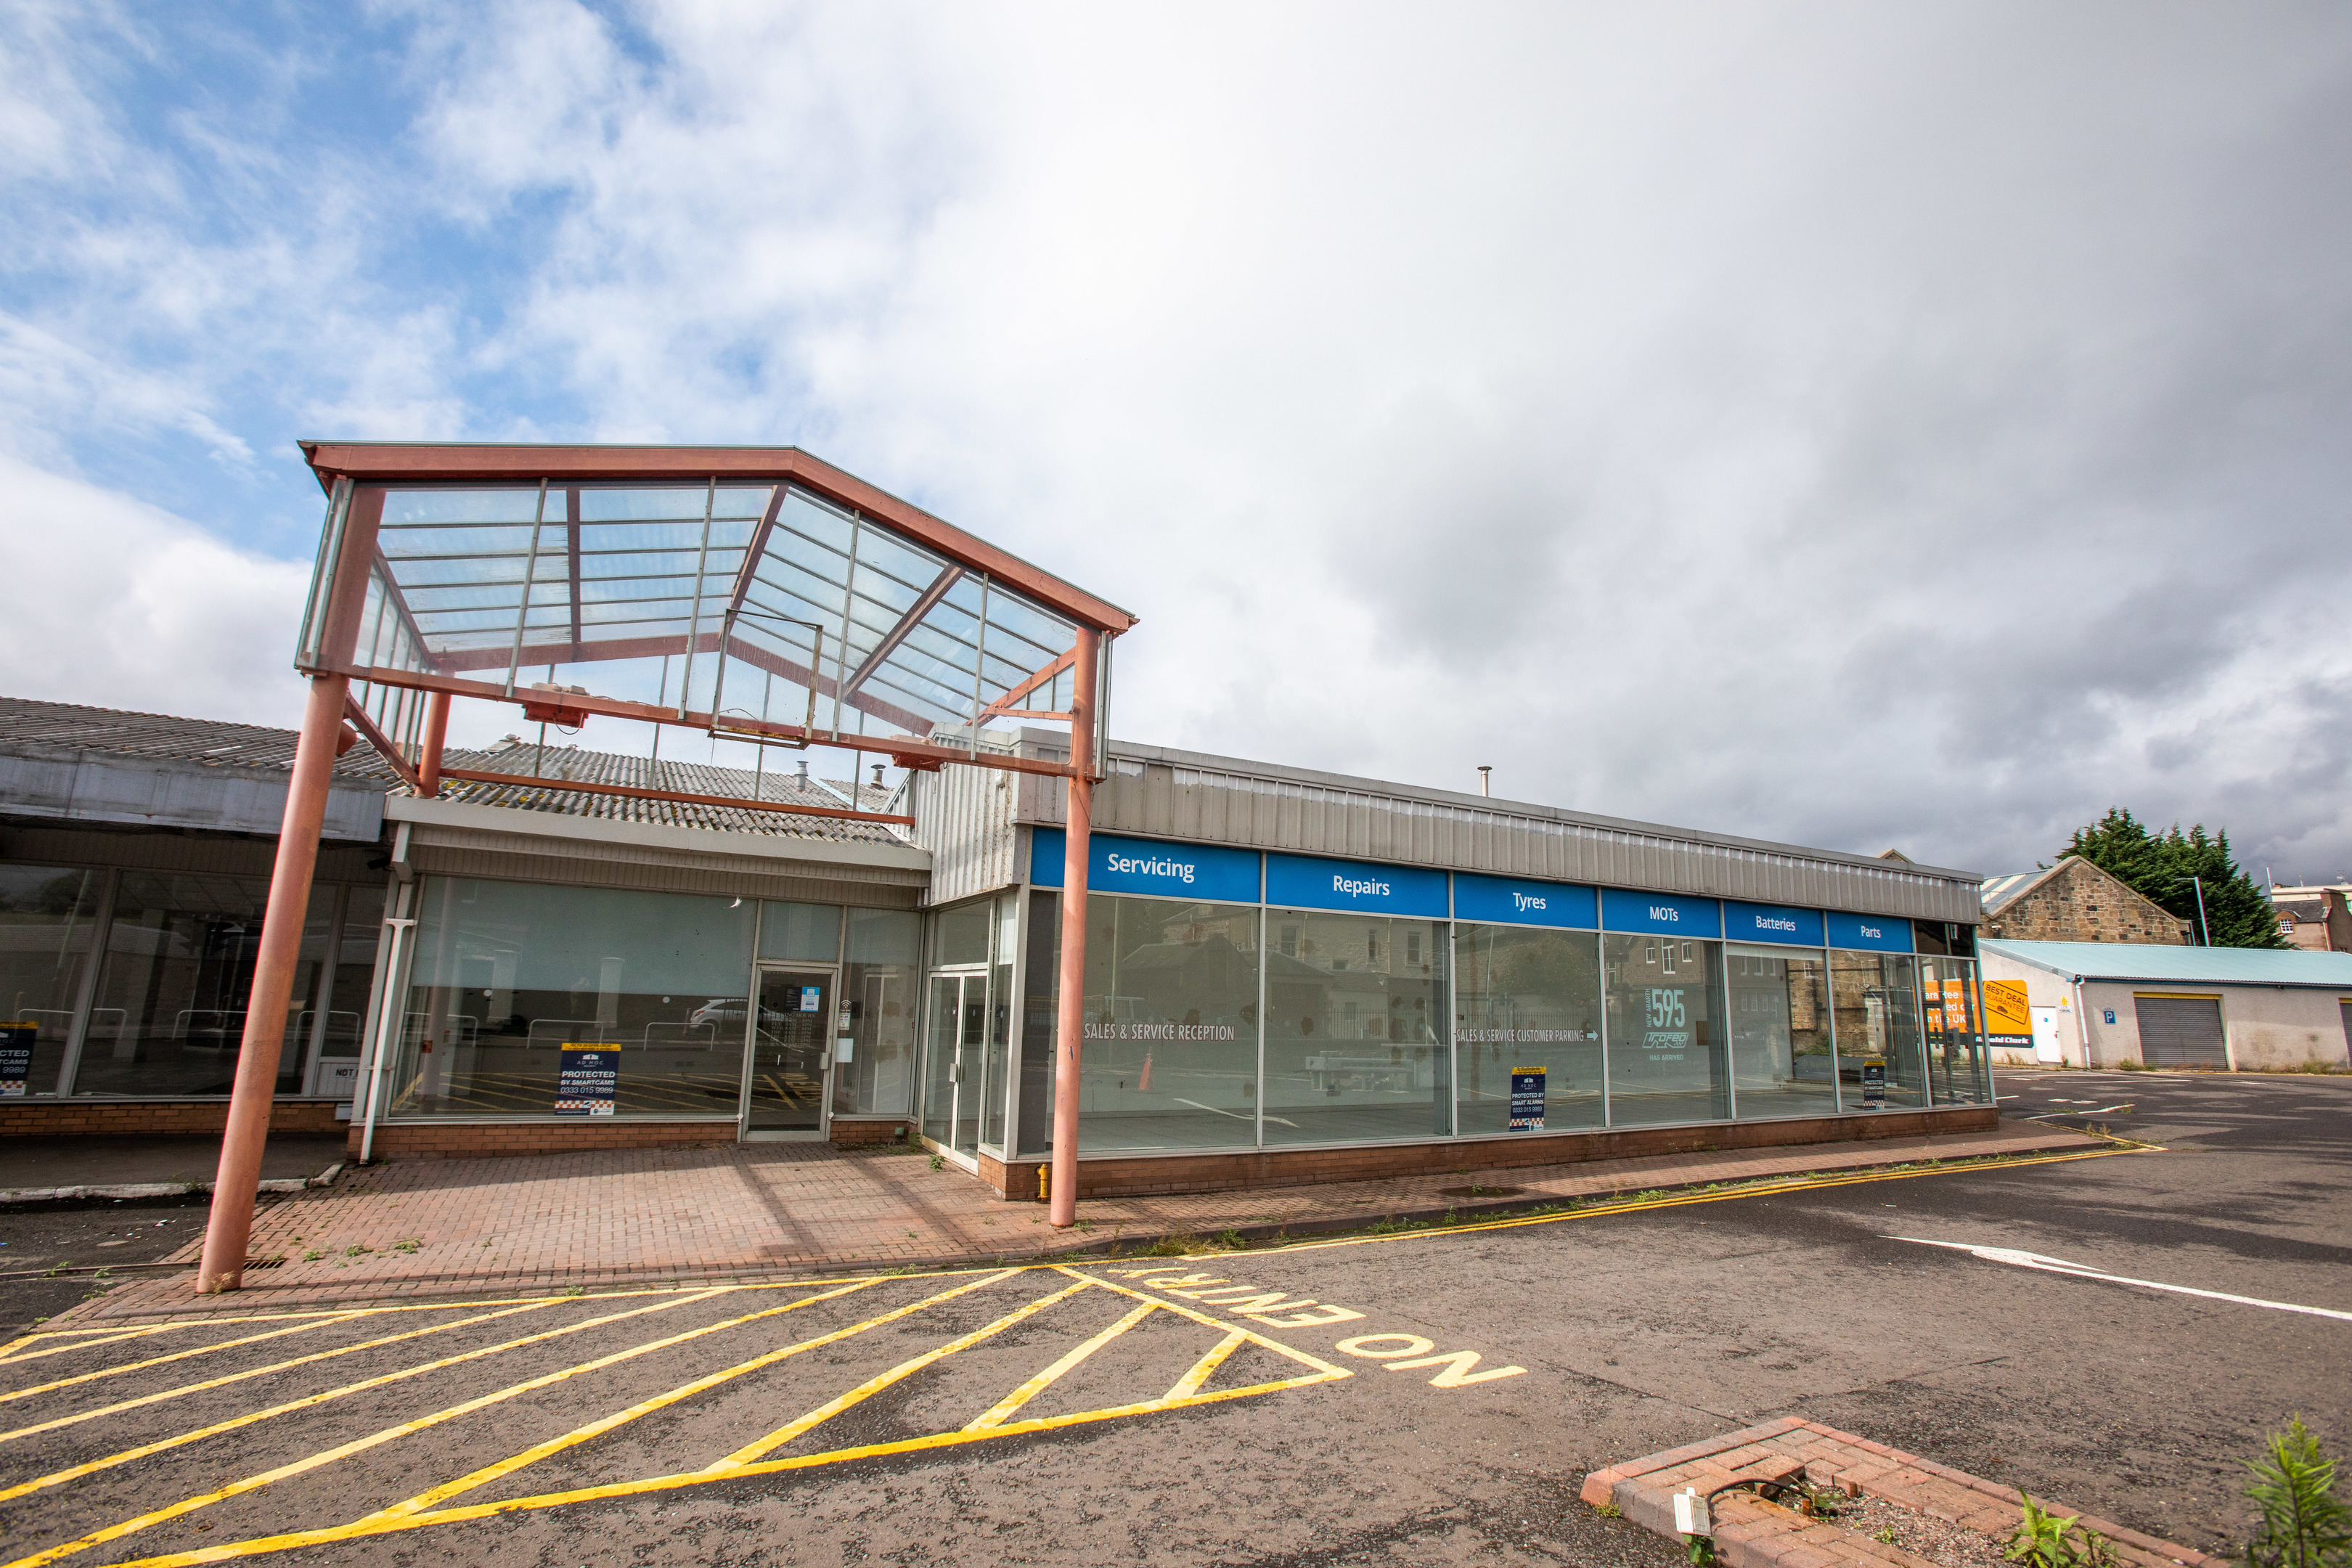 The former Arnold Clark showroom that has been sold to Network Rail